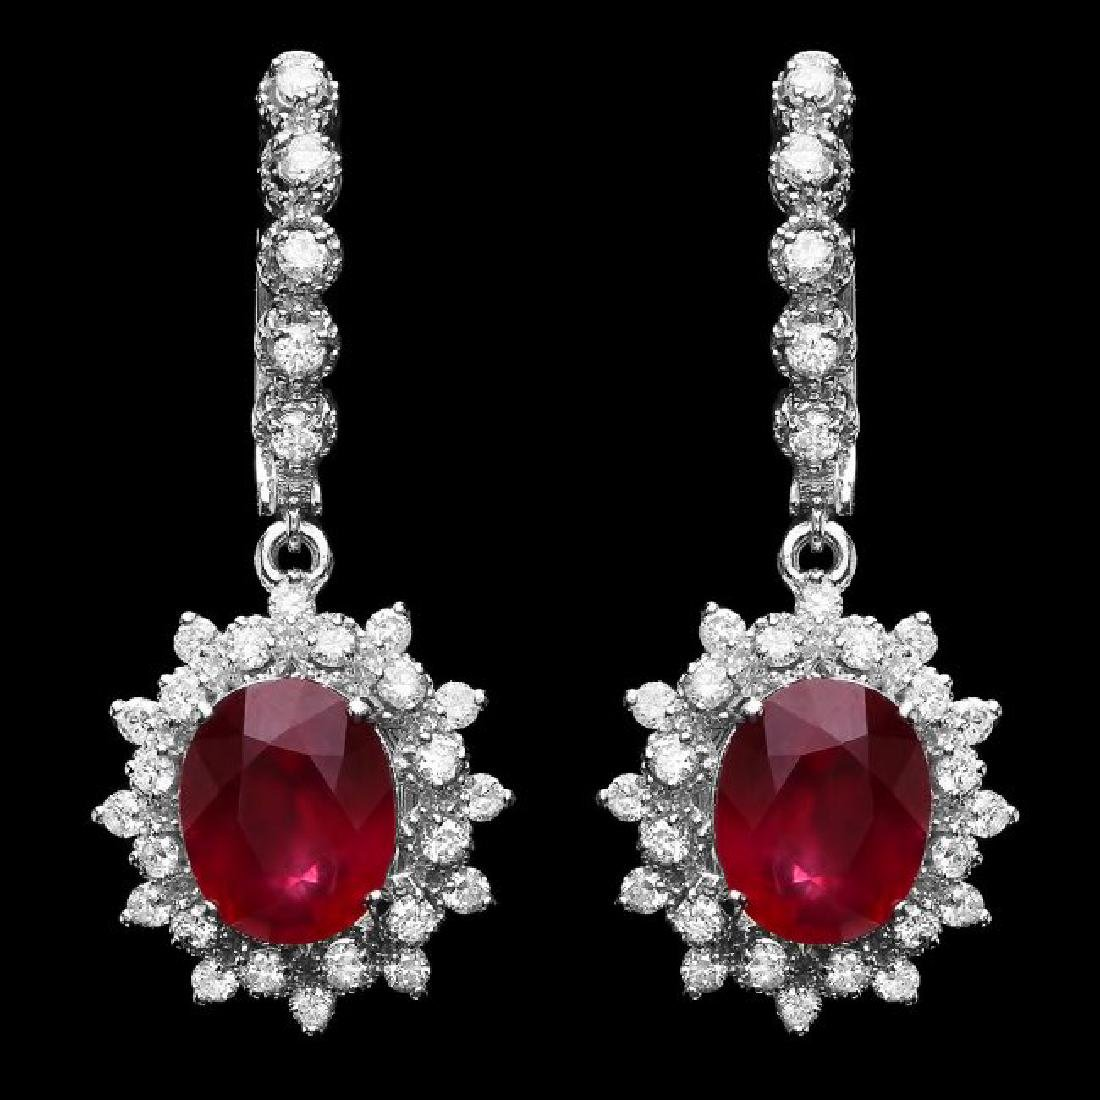 14k Gold 8.00ct Ruby 1.50ct Diamond Earrings